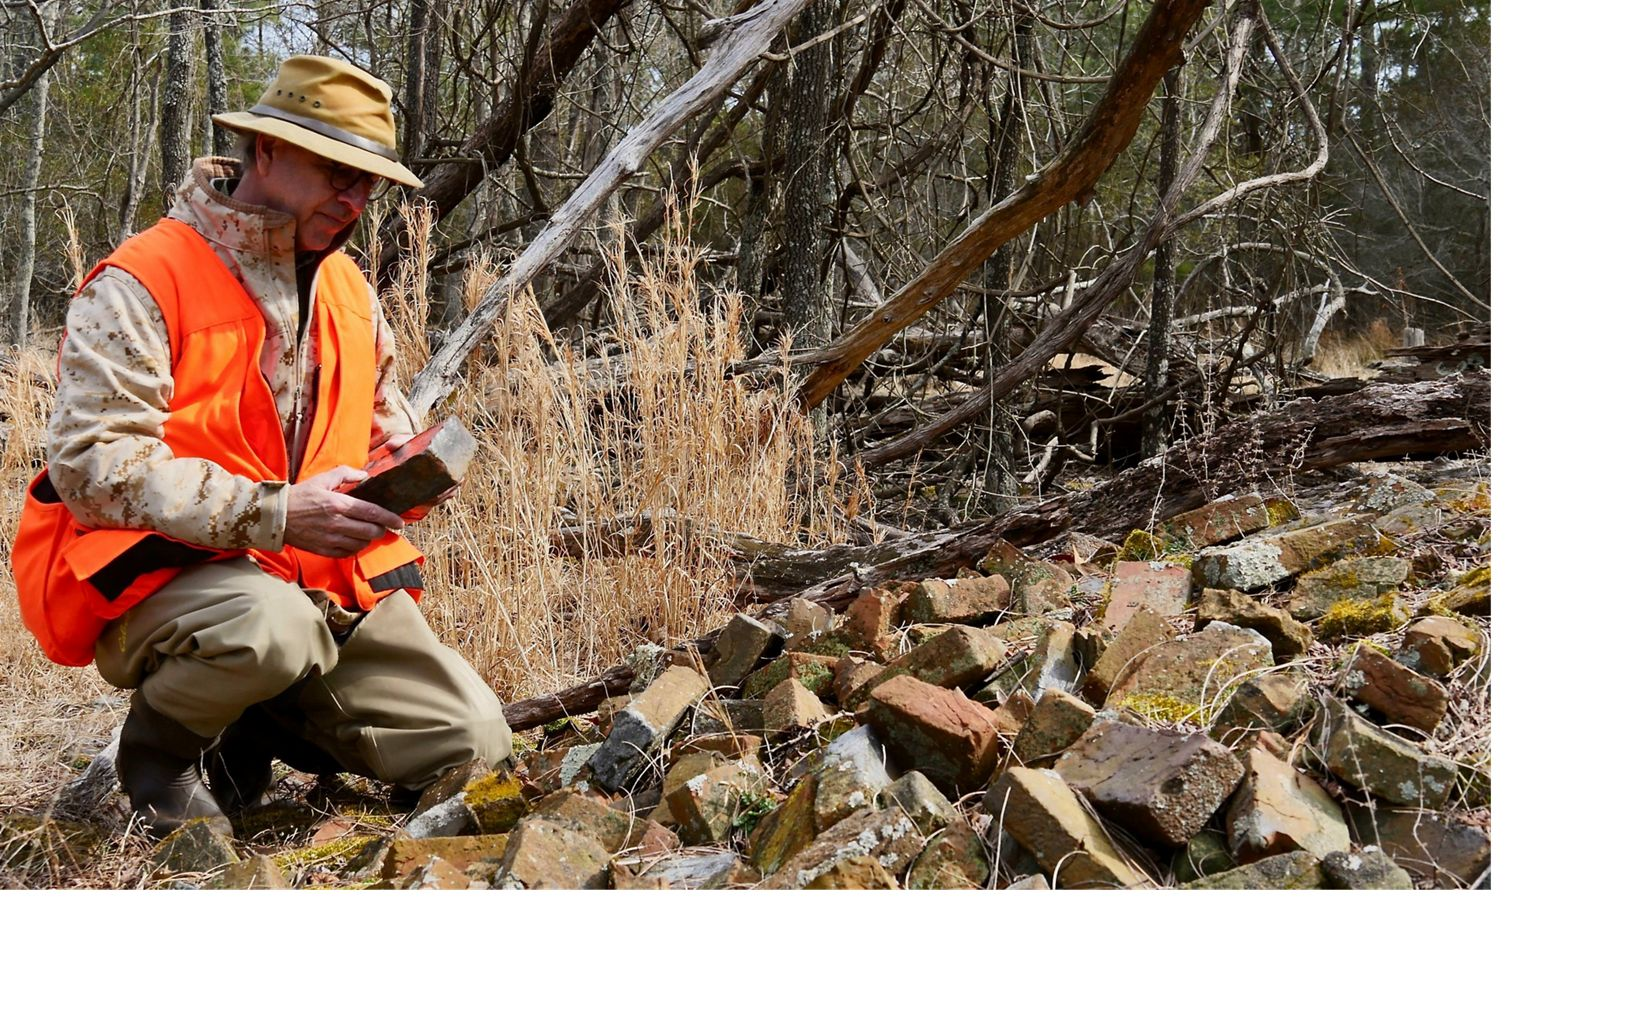 Joe Fehrer inspects bricks from the historic Robson family homestead on TNC's Robinson Neck preserve.